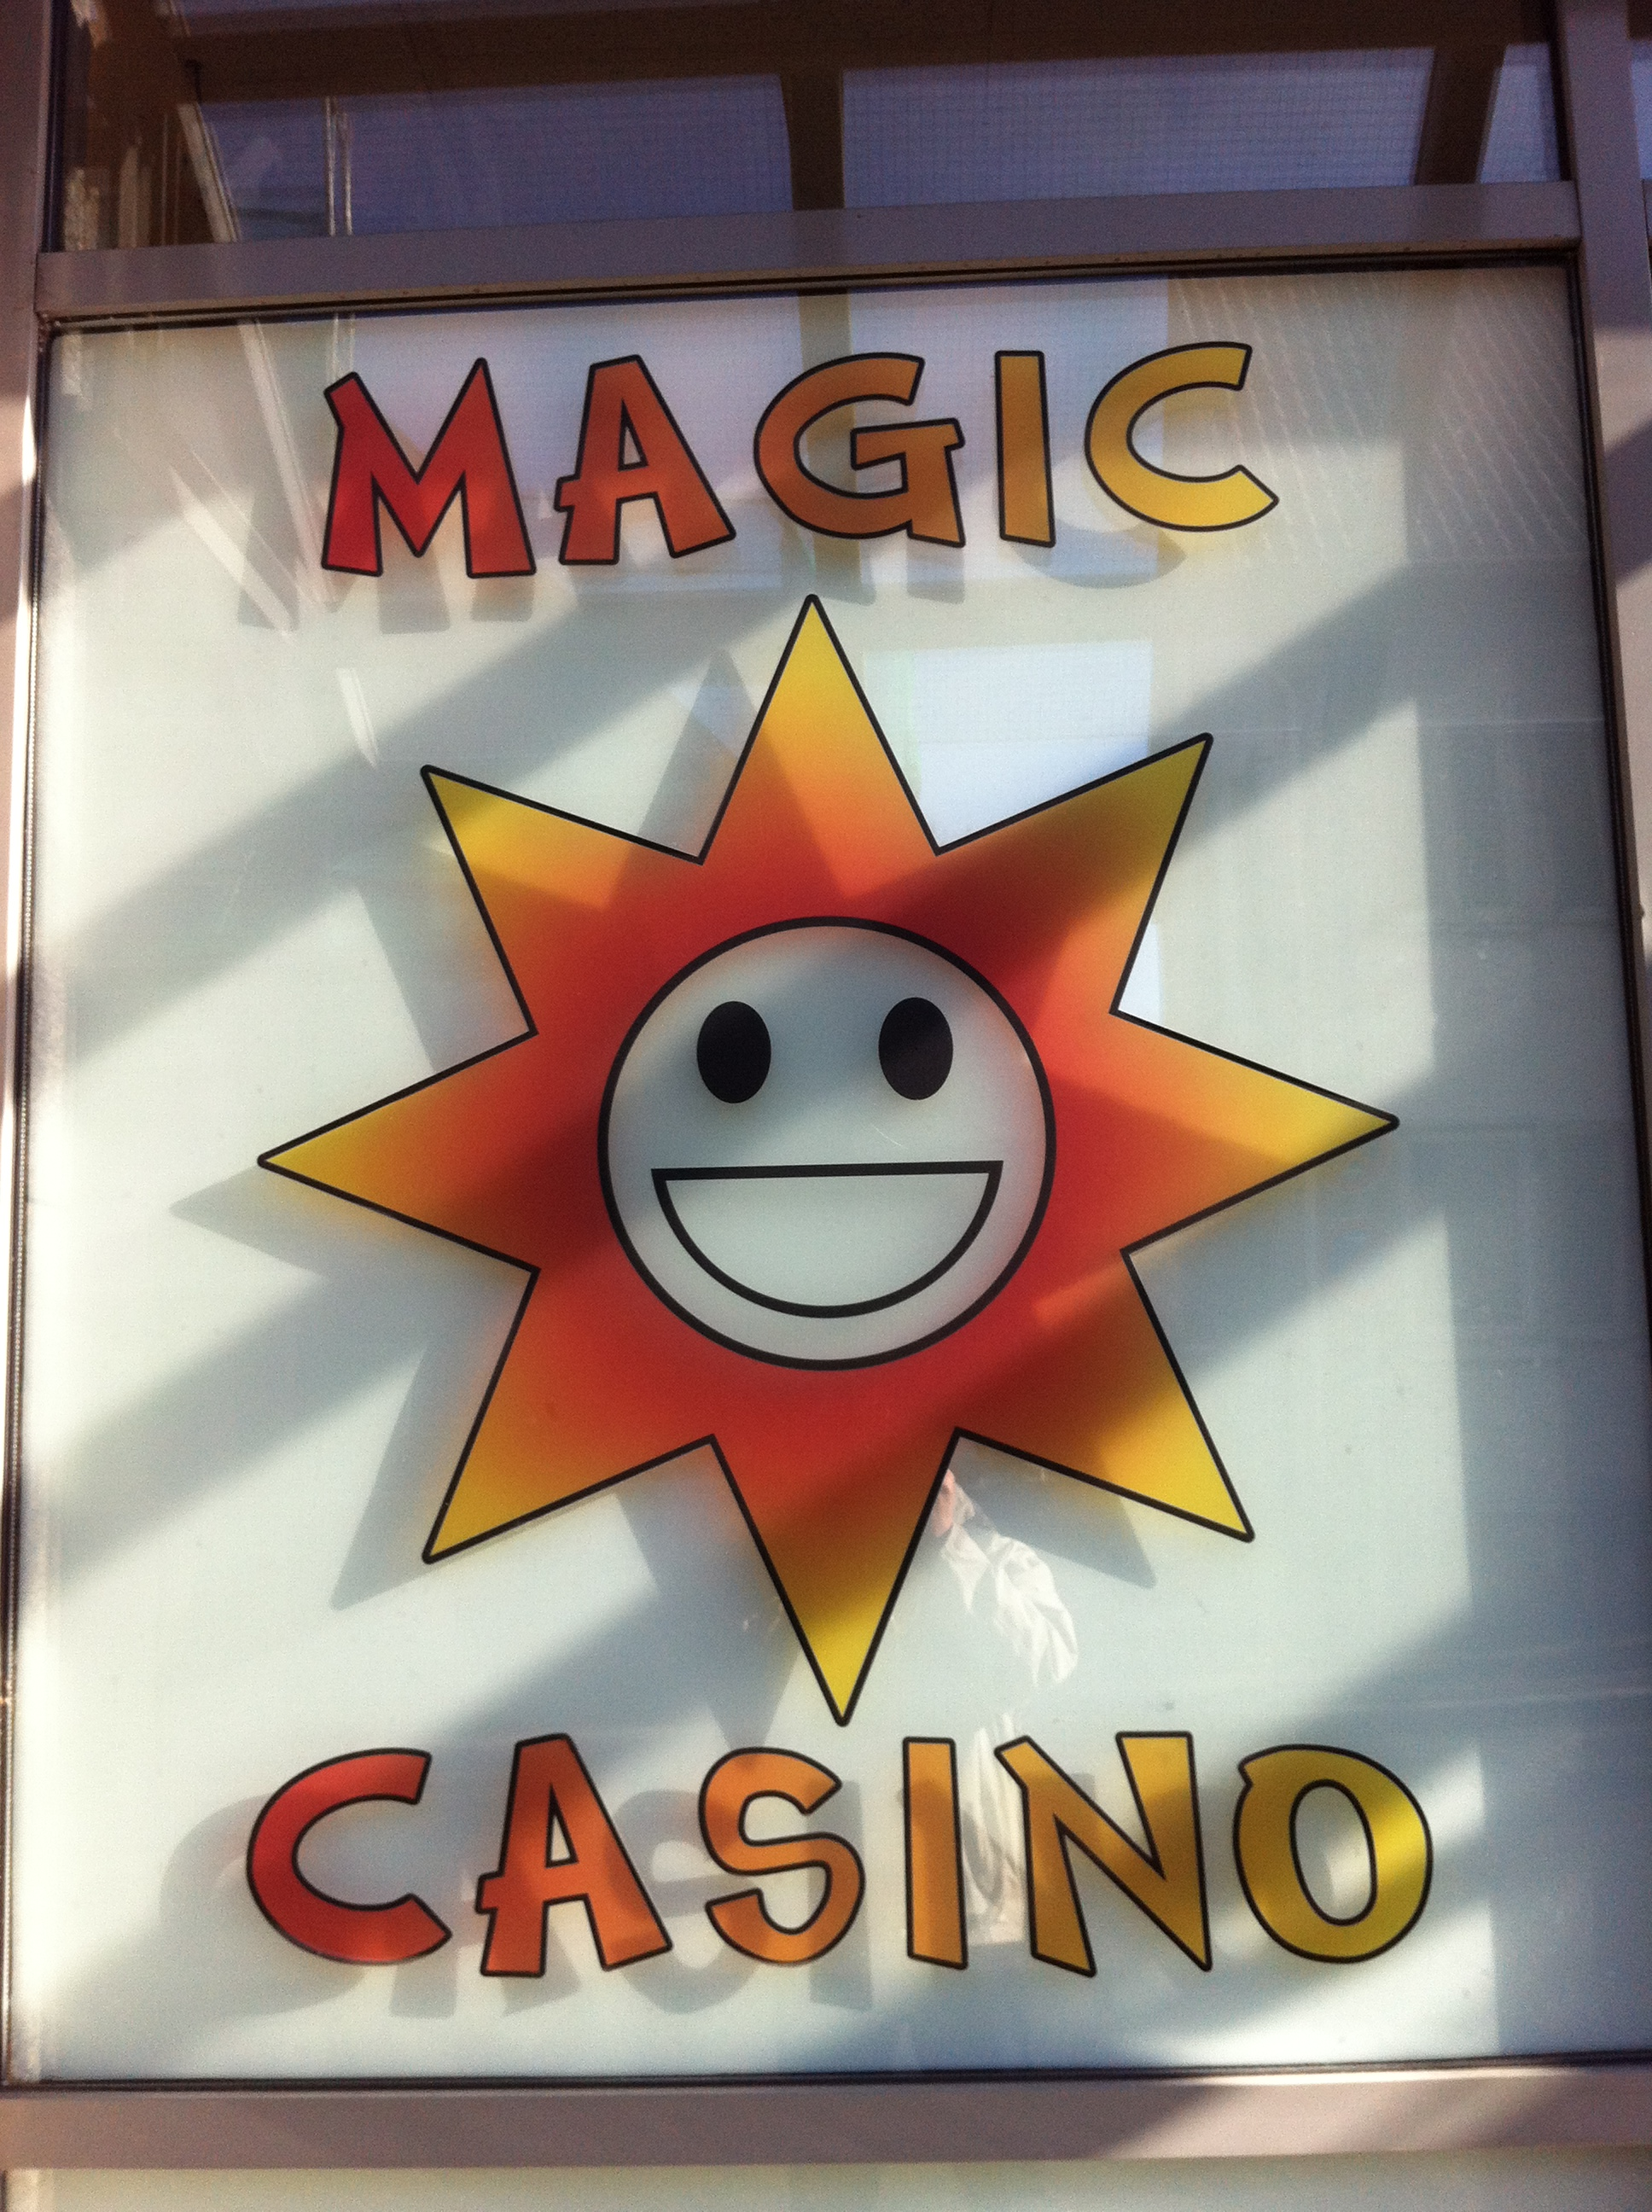 magic casino offenburg